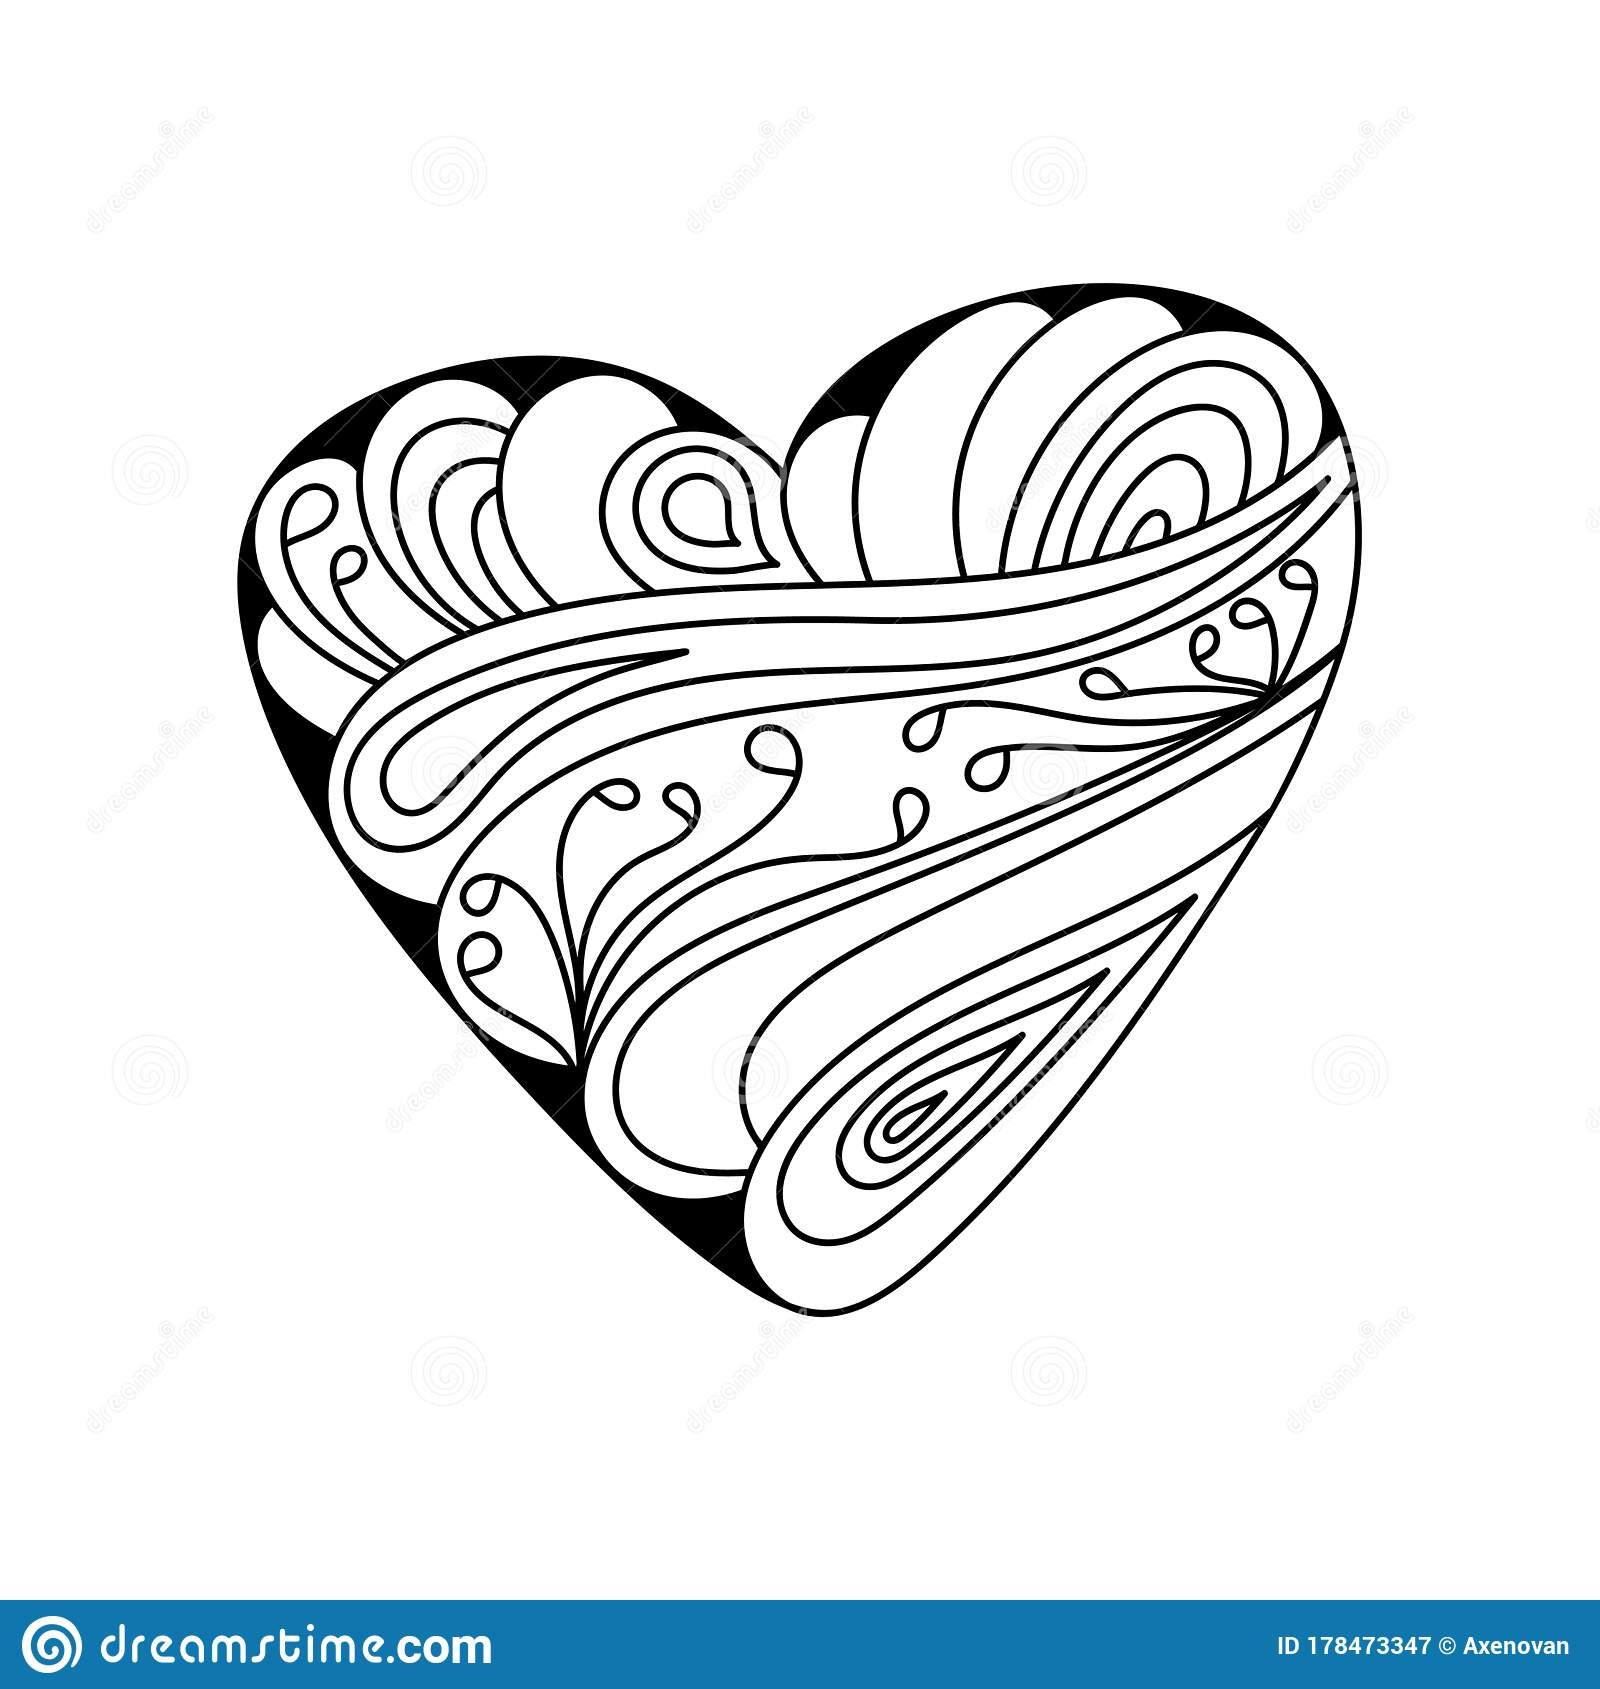 Hand Drawn Coloring Book Beautiful Heart With Ornate Ornaments Anti Stress Coloring Pages For Adults And Children Vector Stock Illustration Illustration Of Drawing Color 178473347